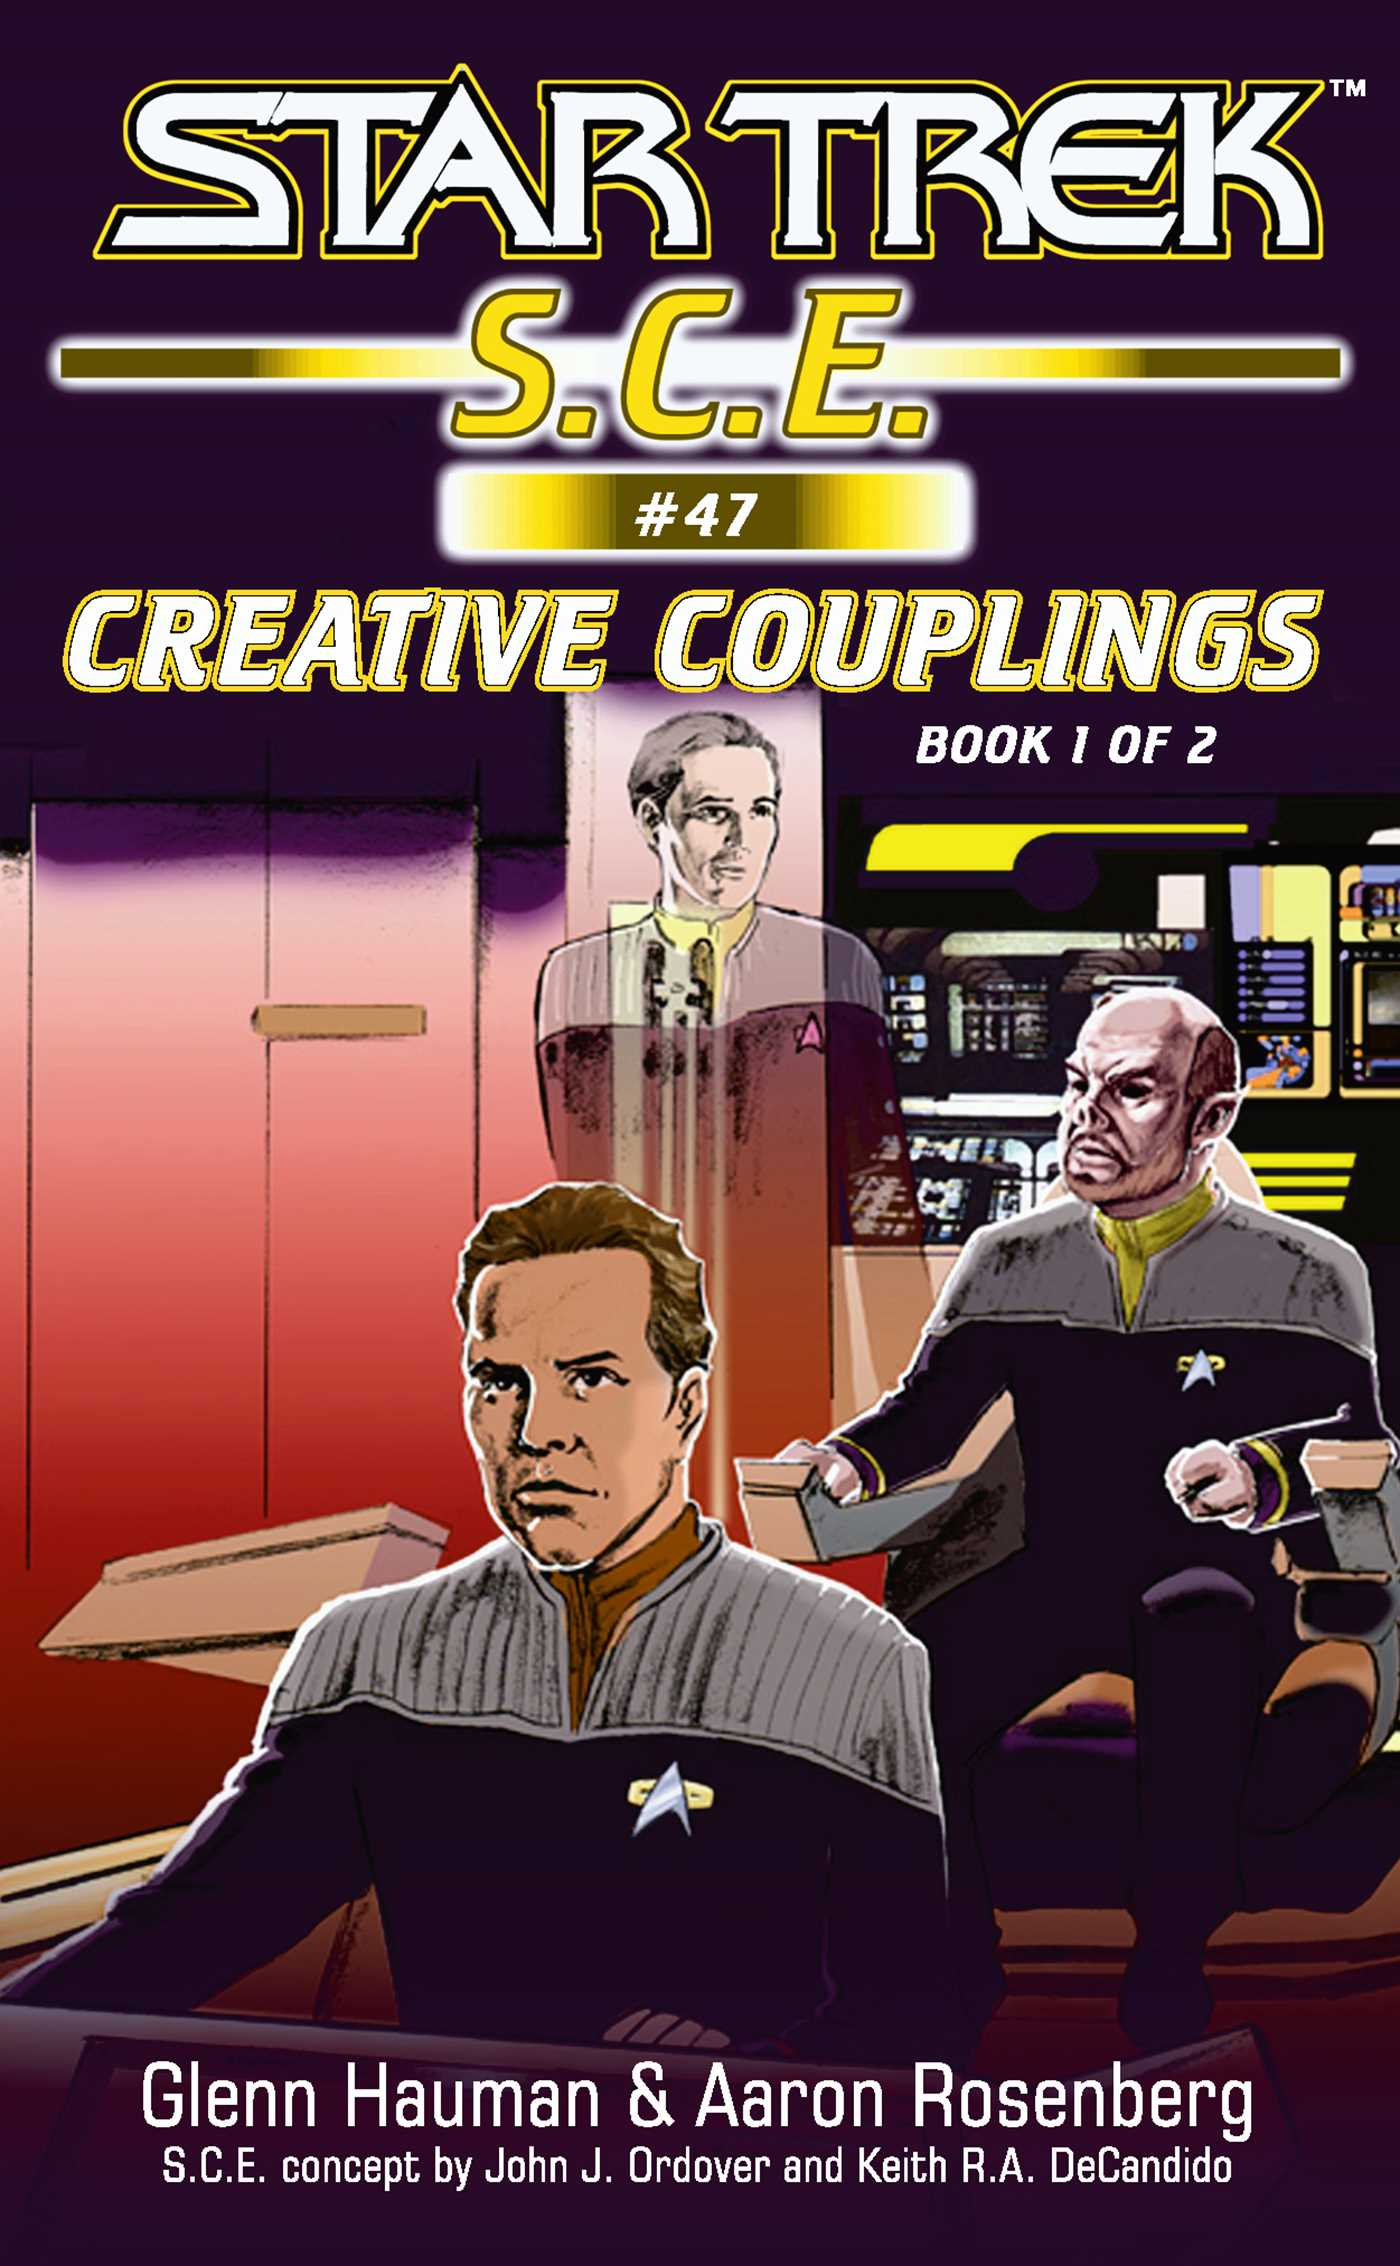 Star-trek-creative-couplings-book-1-9780743496889_hr